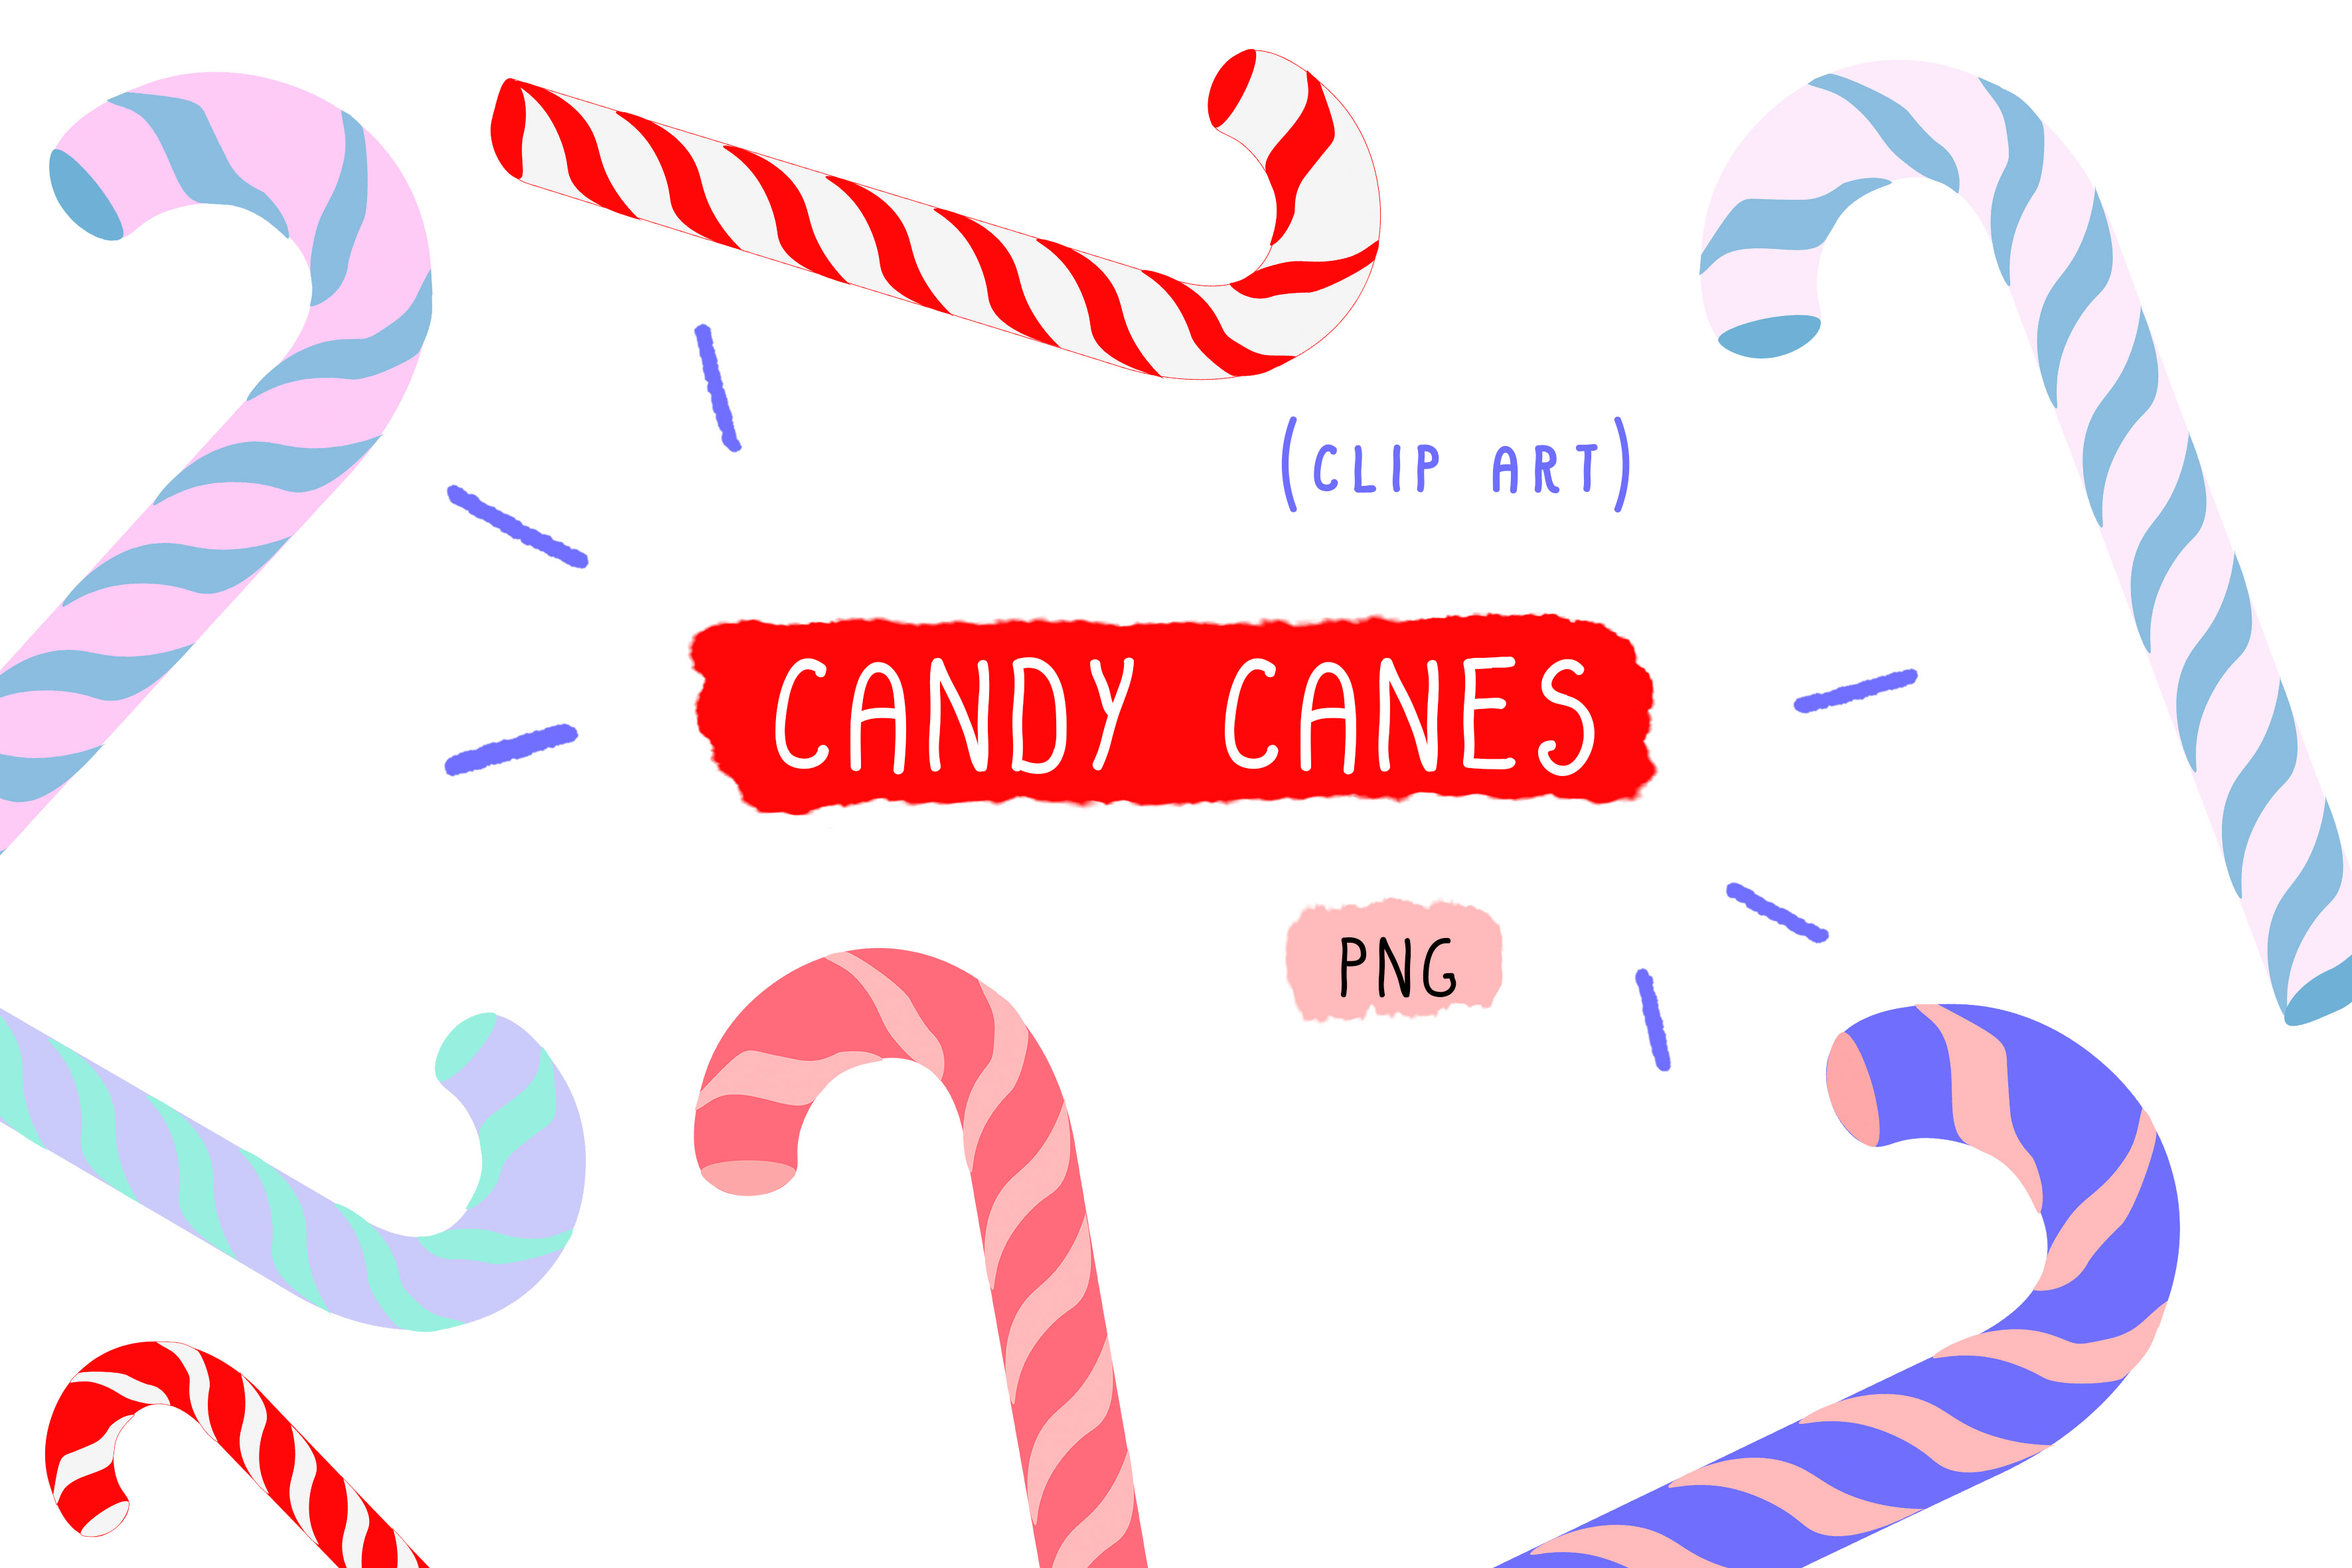 Download Free Candy Canes Cutting File Clip Art Graphic By Inkclouddesign for Cricut Explore, Silhouette and other cutting machines.